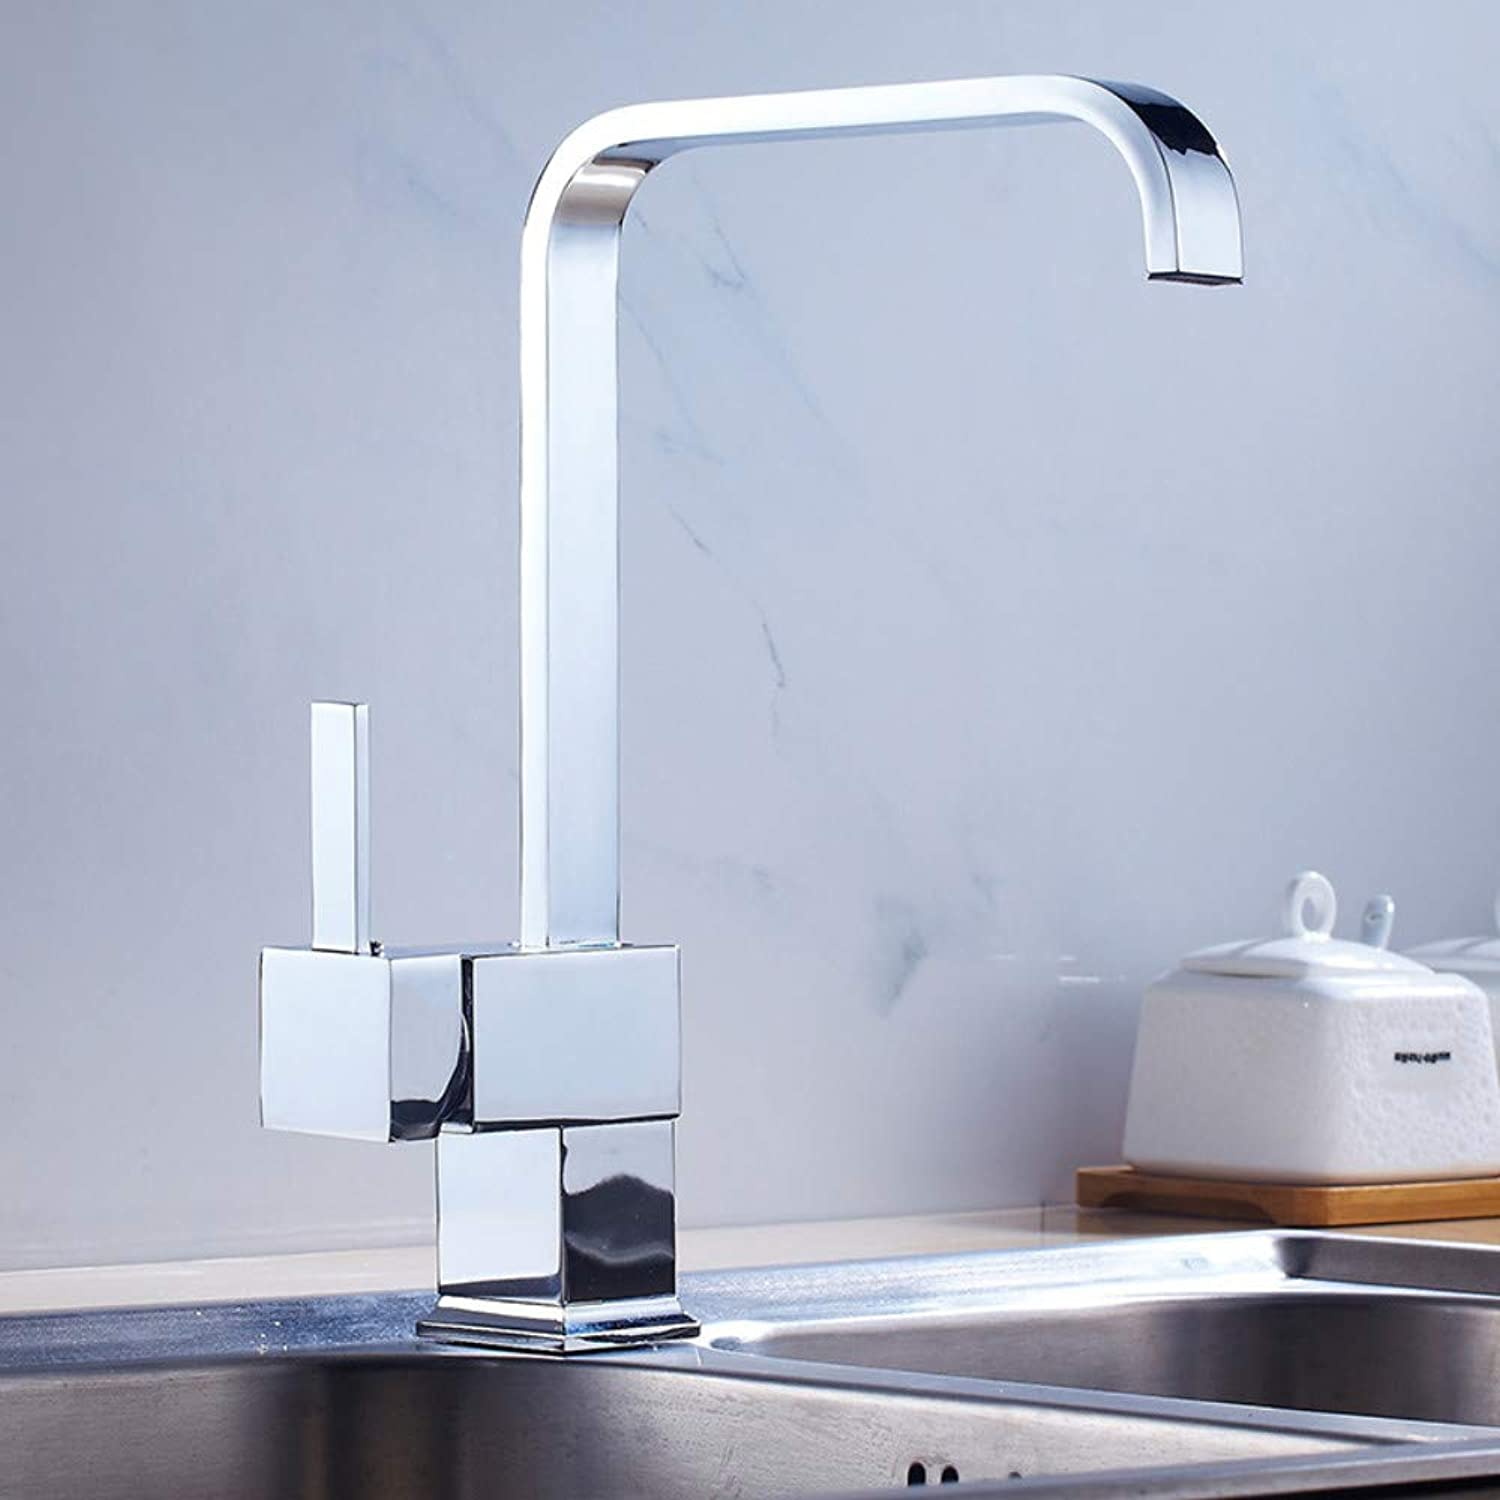 Kitchen Sink Faucet Kitchen Copper Faucet Square redating Faucet Hot and Cold Water Mixing Faucet